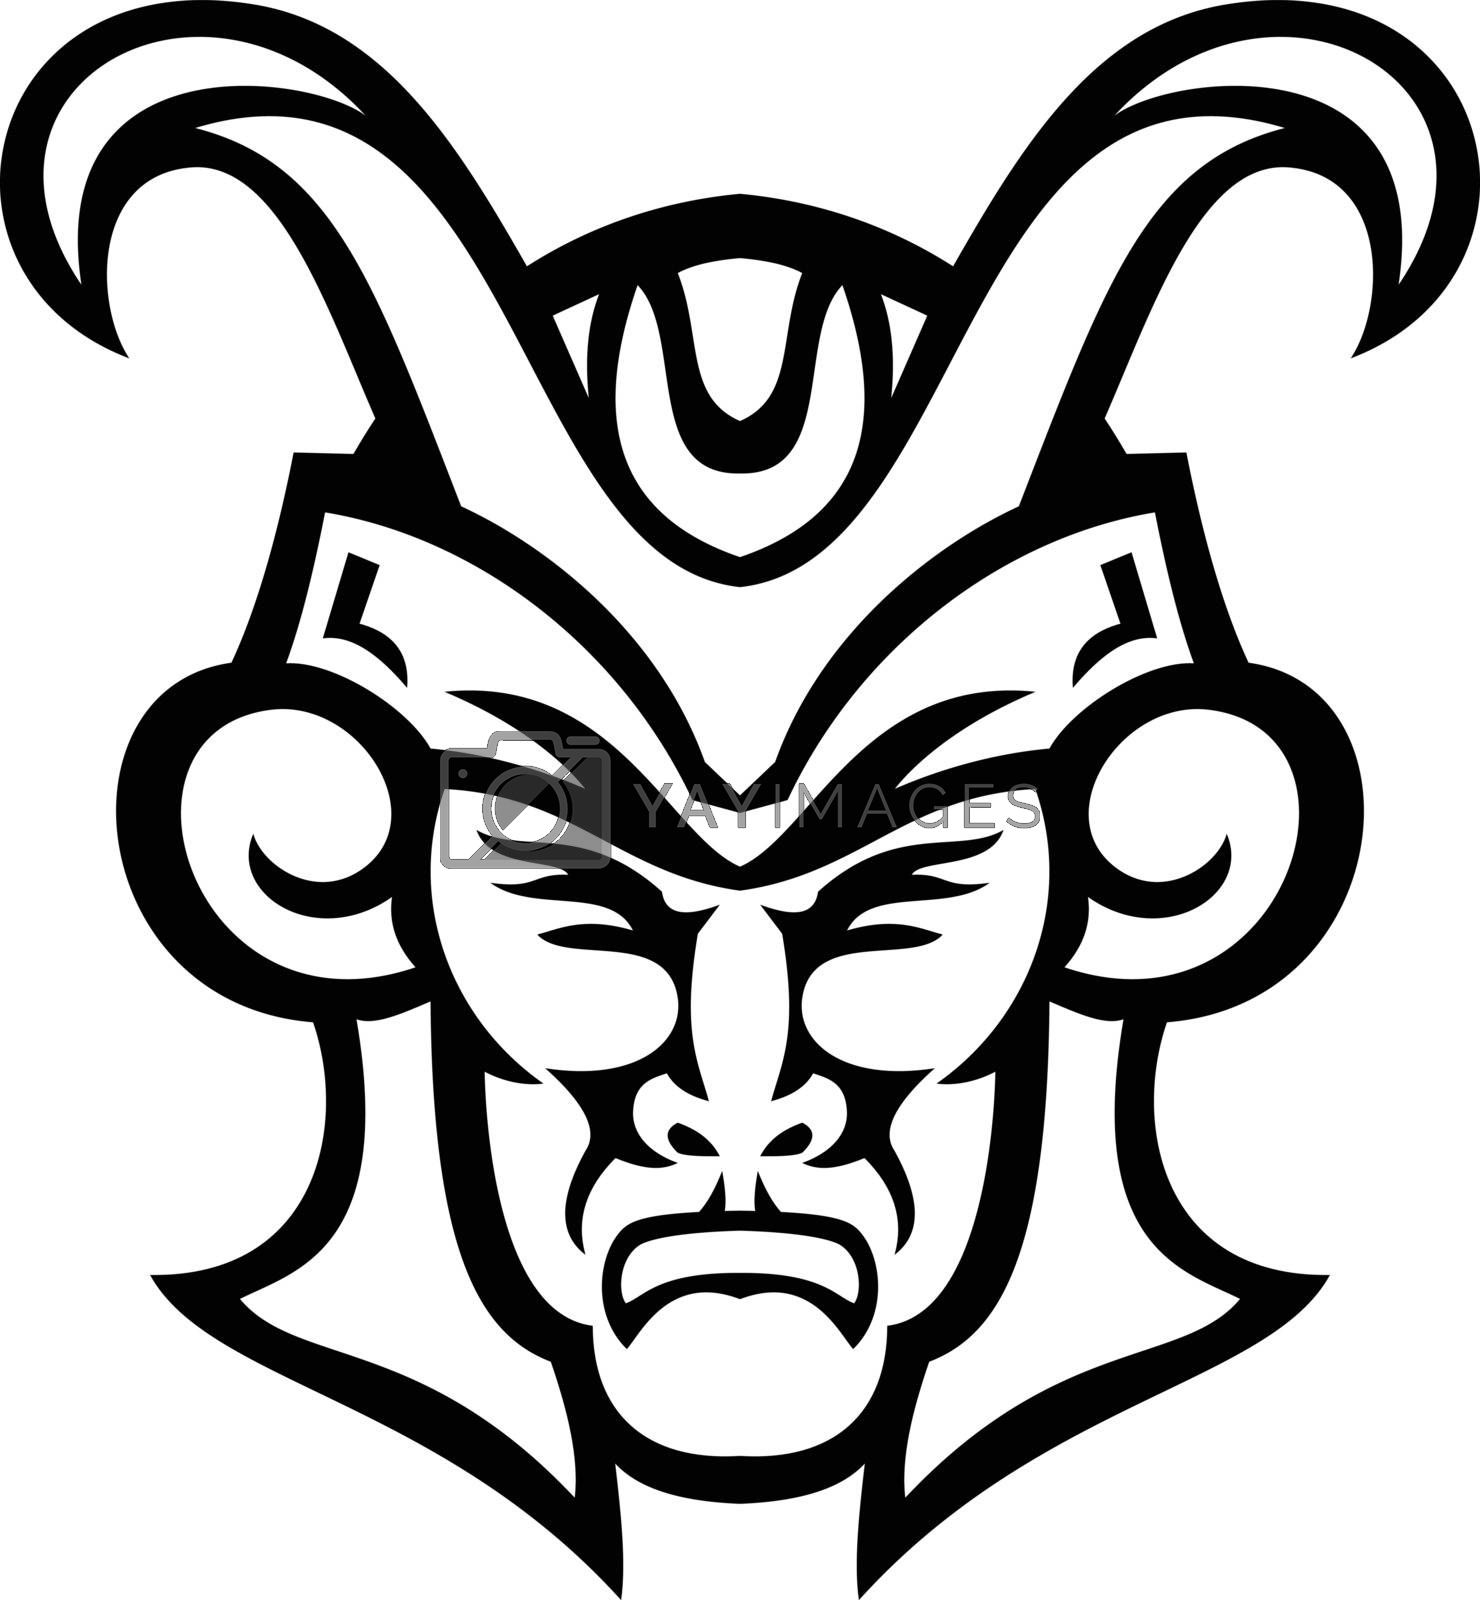 Black and white mascot illustration of head of Loki, a god in Norse mythology, who is a  shape shifter viewed from  front on isolated background in retro style.